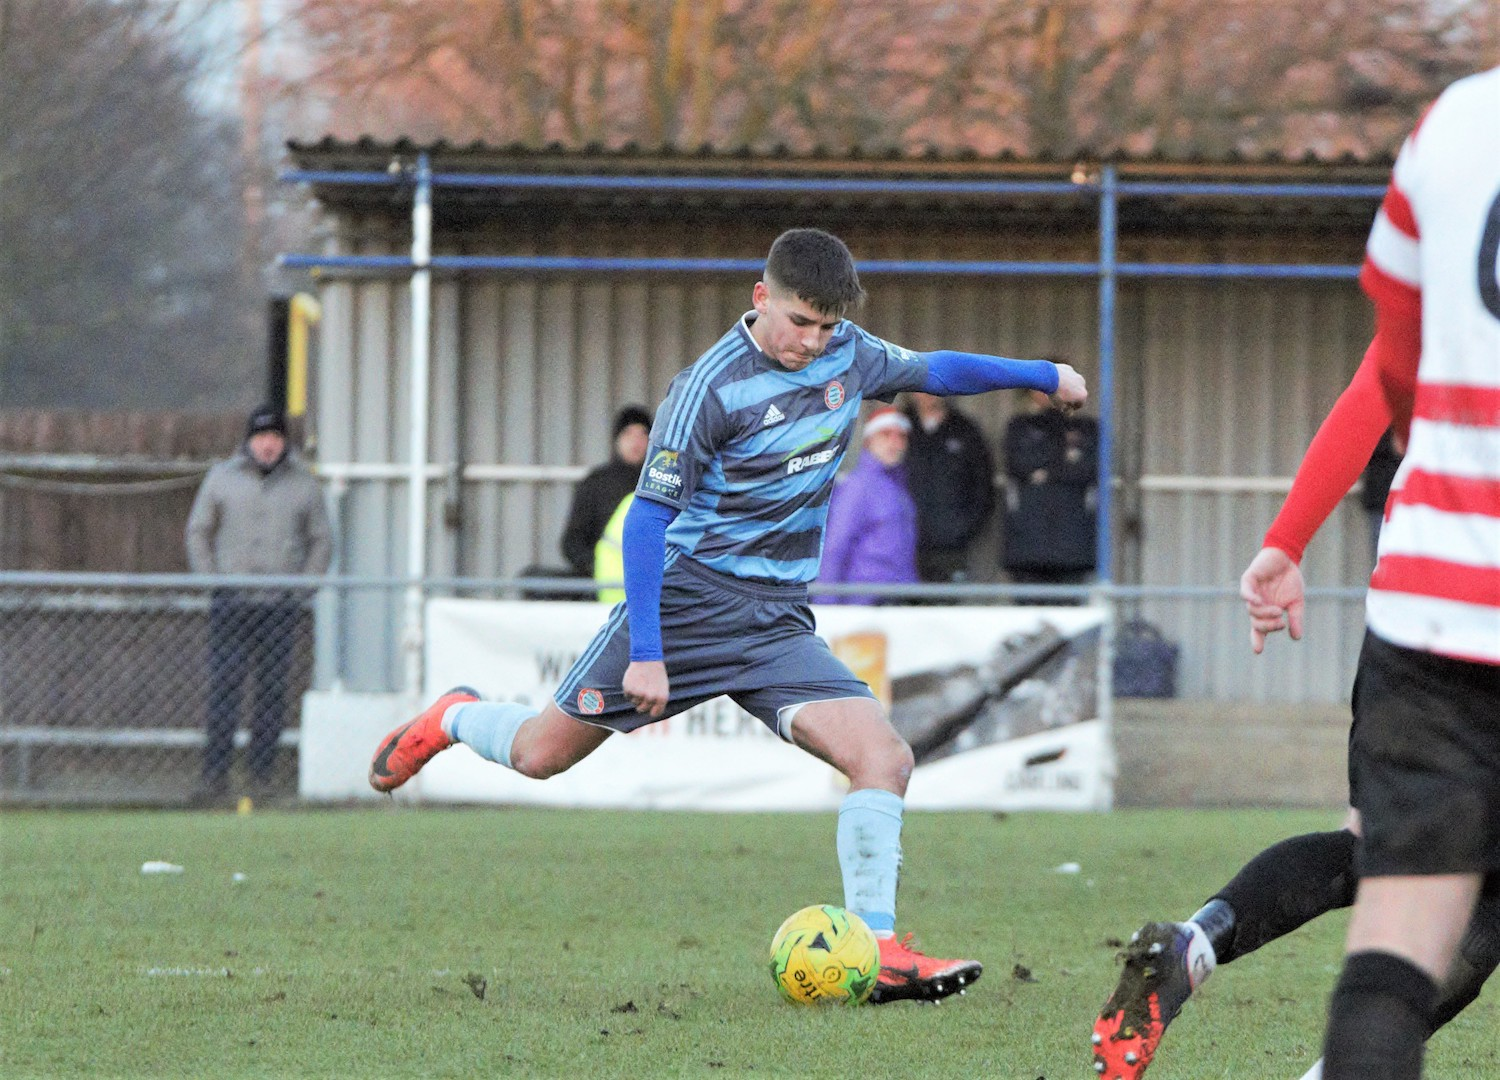 Read the full article - HIGHLIGHTS: Kingstonian 2-3 Worthing [A] – League